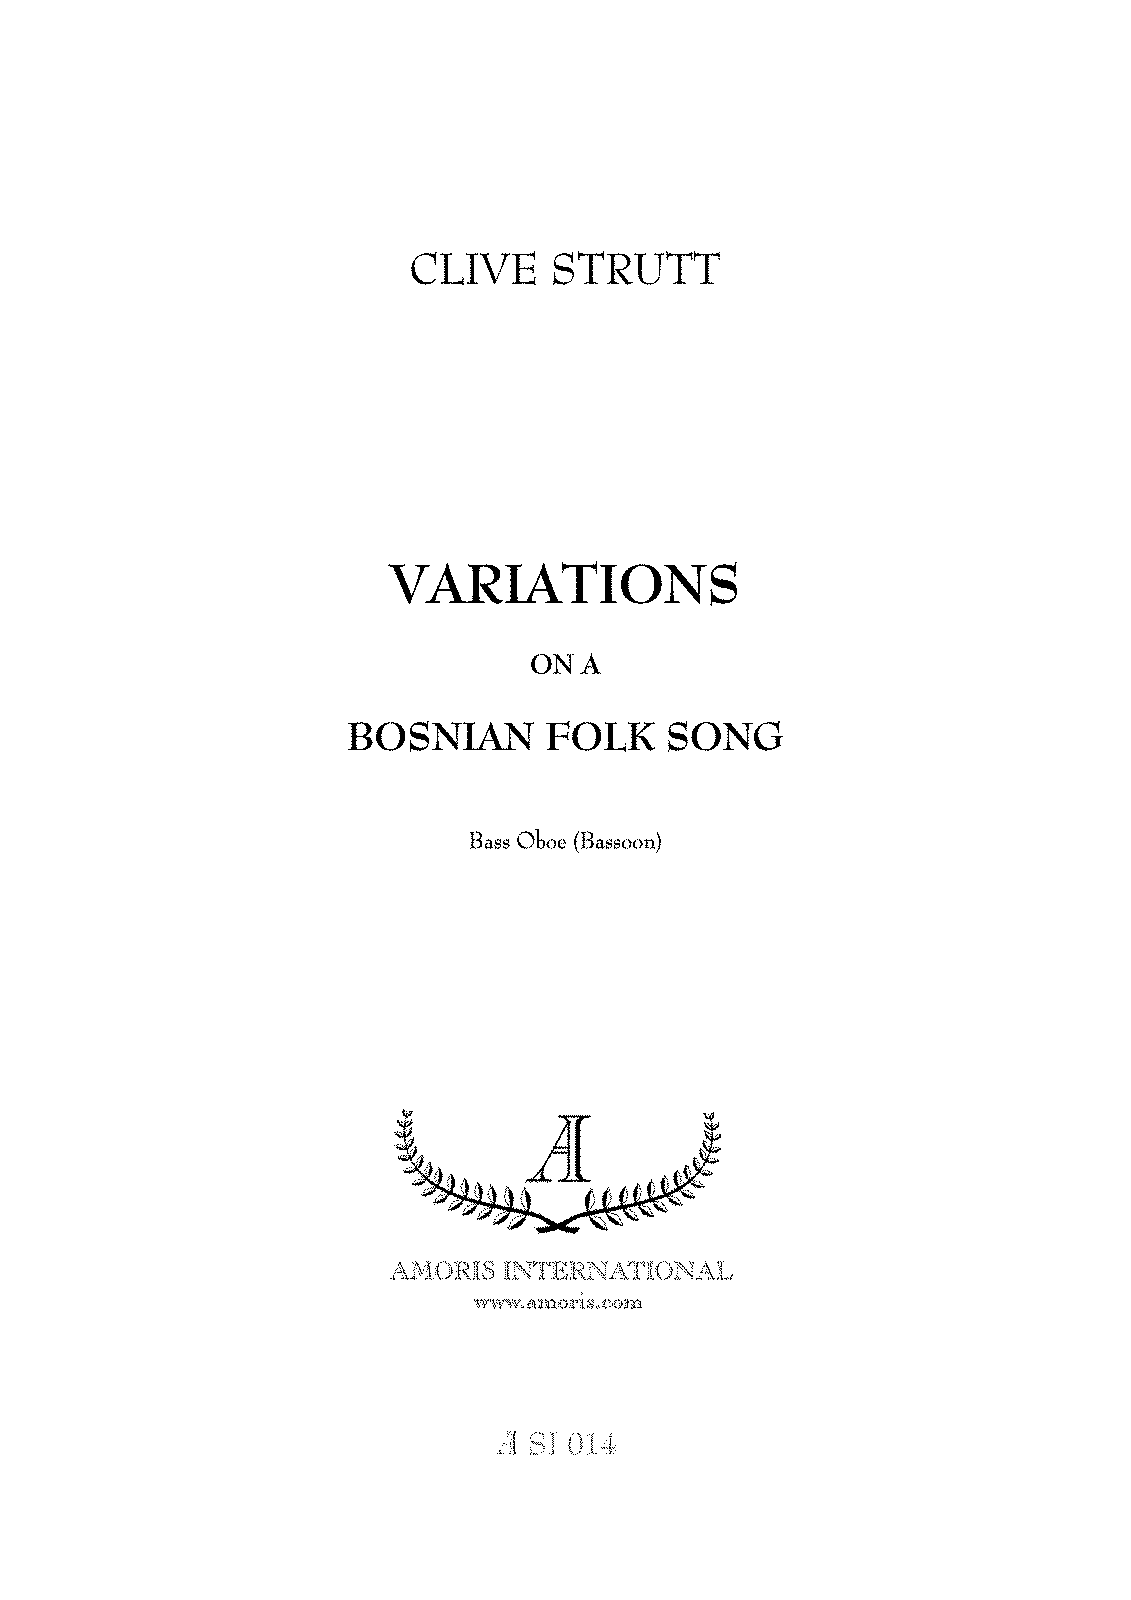 WIMA.bee4-Bosnian-Variations.pdf